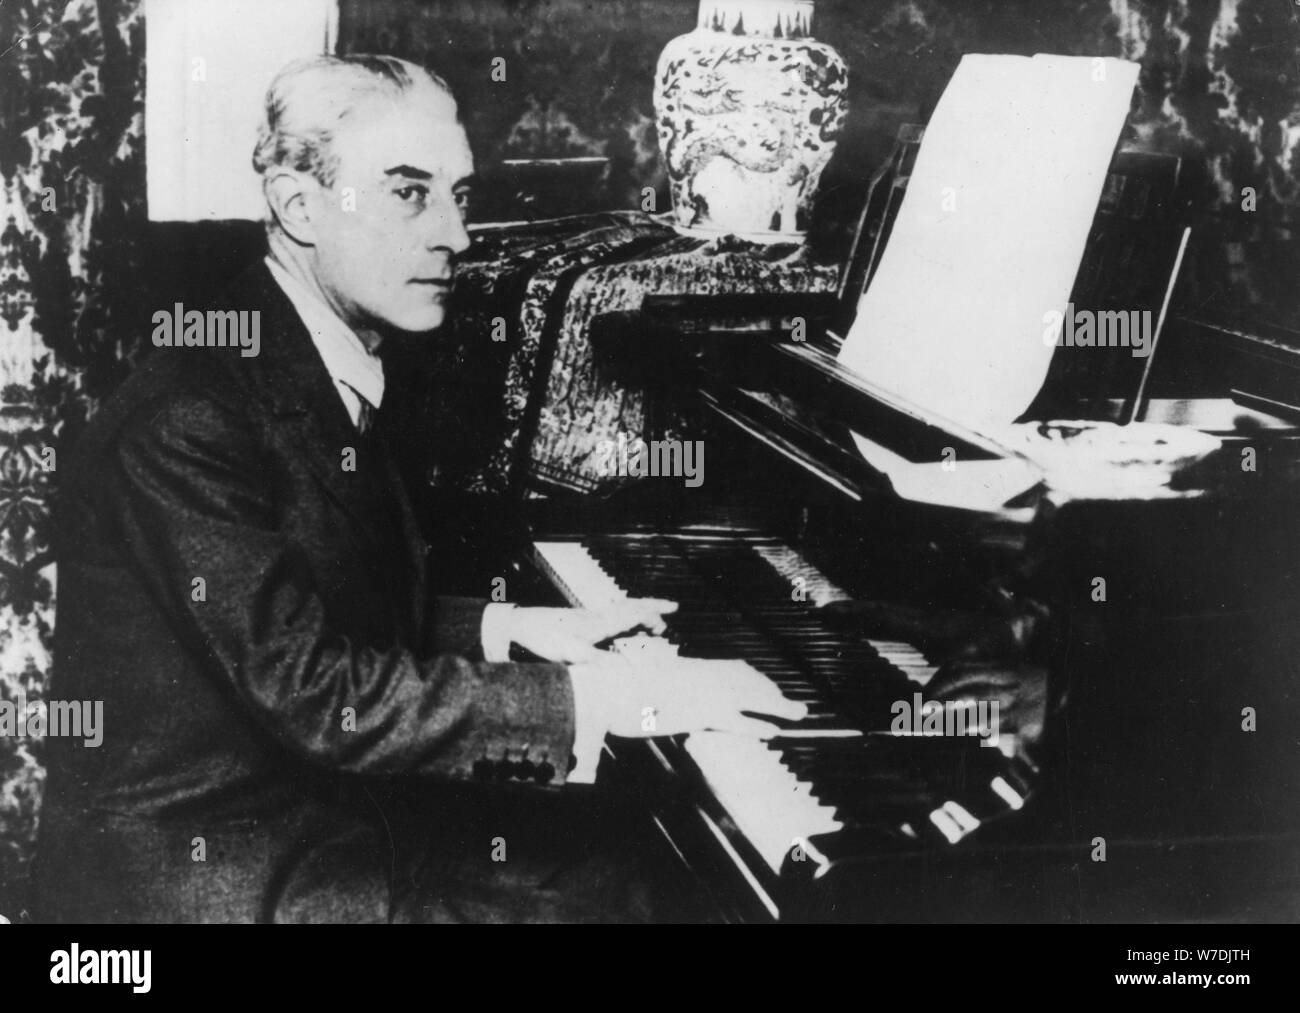 Maurice Ravel (1875-1937), French composer and pianist